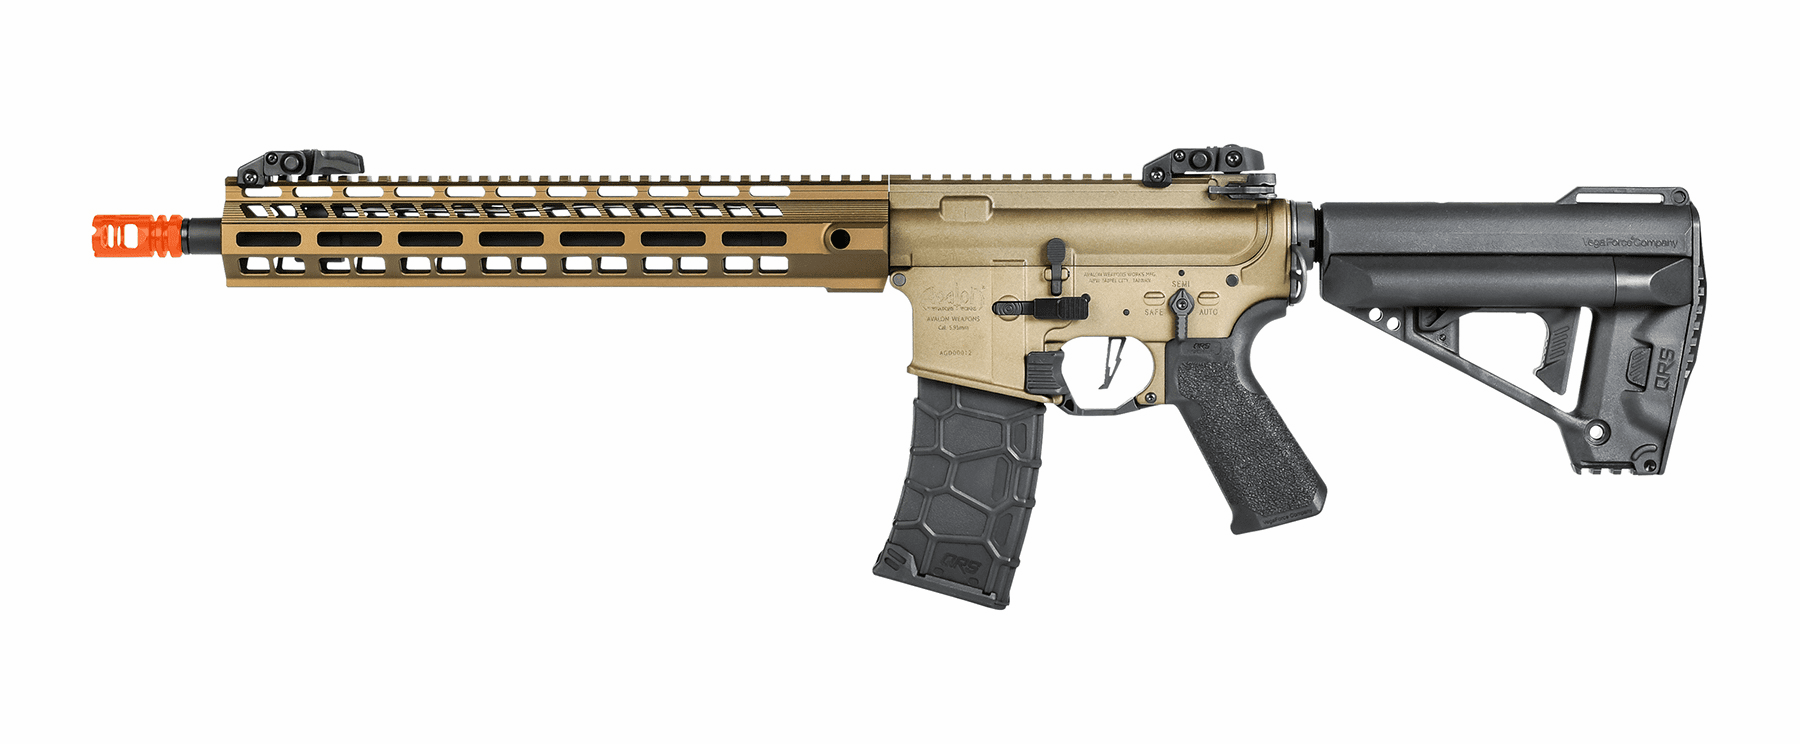 VFC Avalon Full Metal VR16 Saber Carbine M4